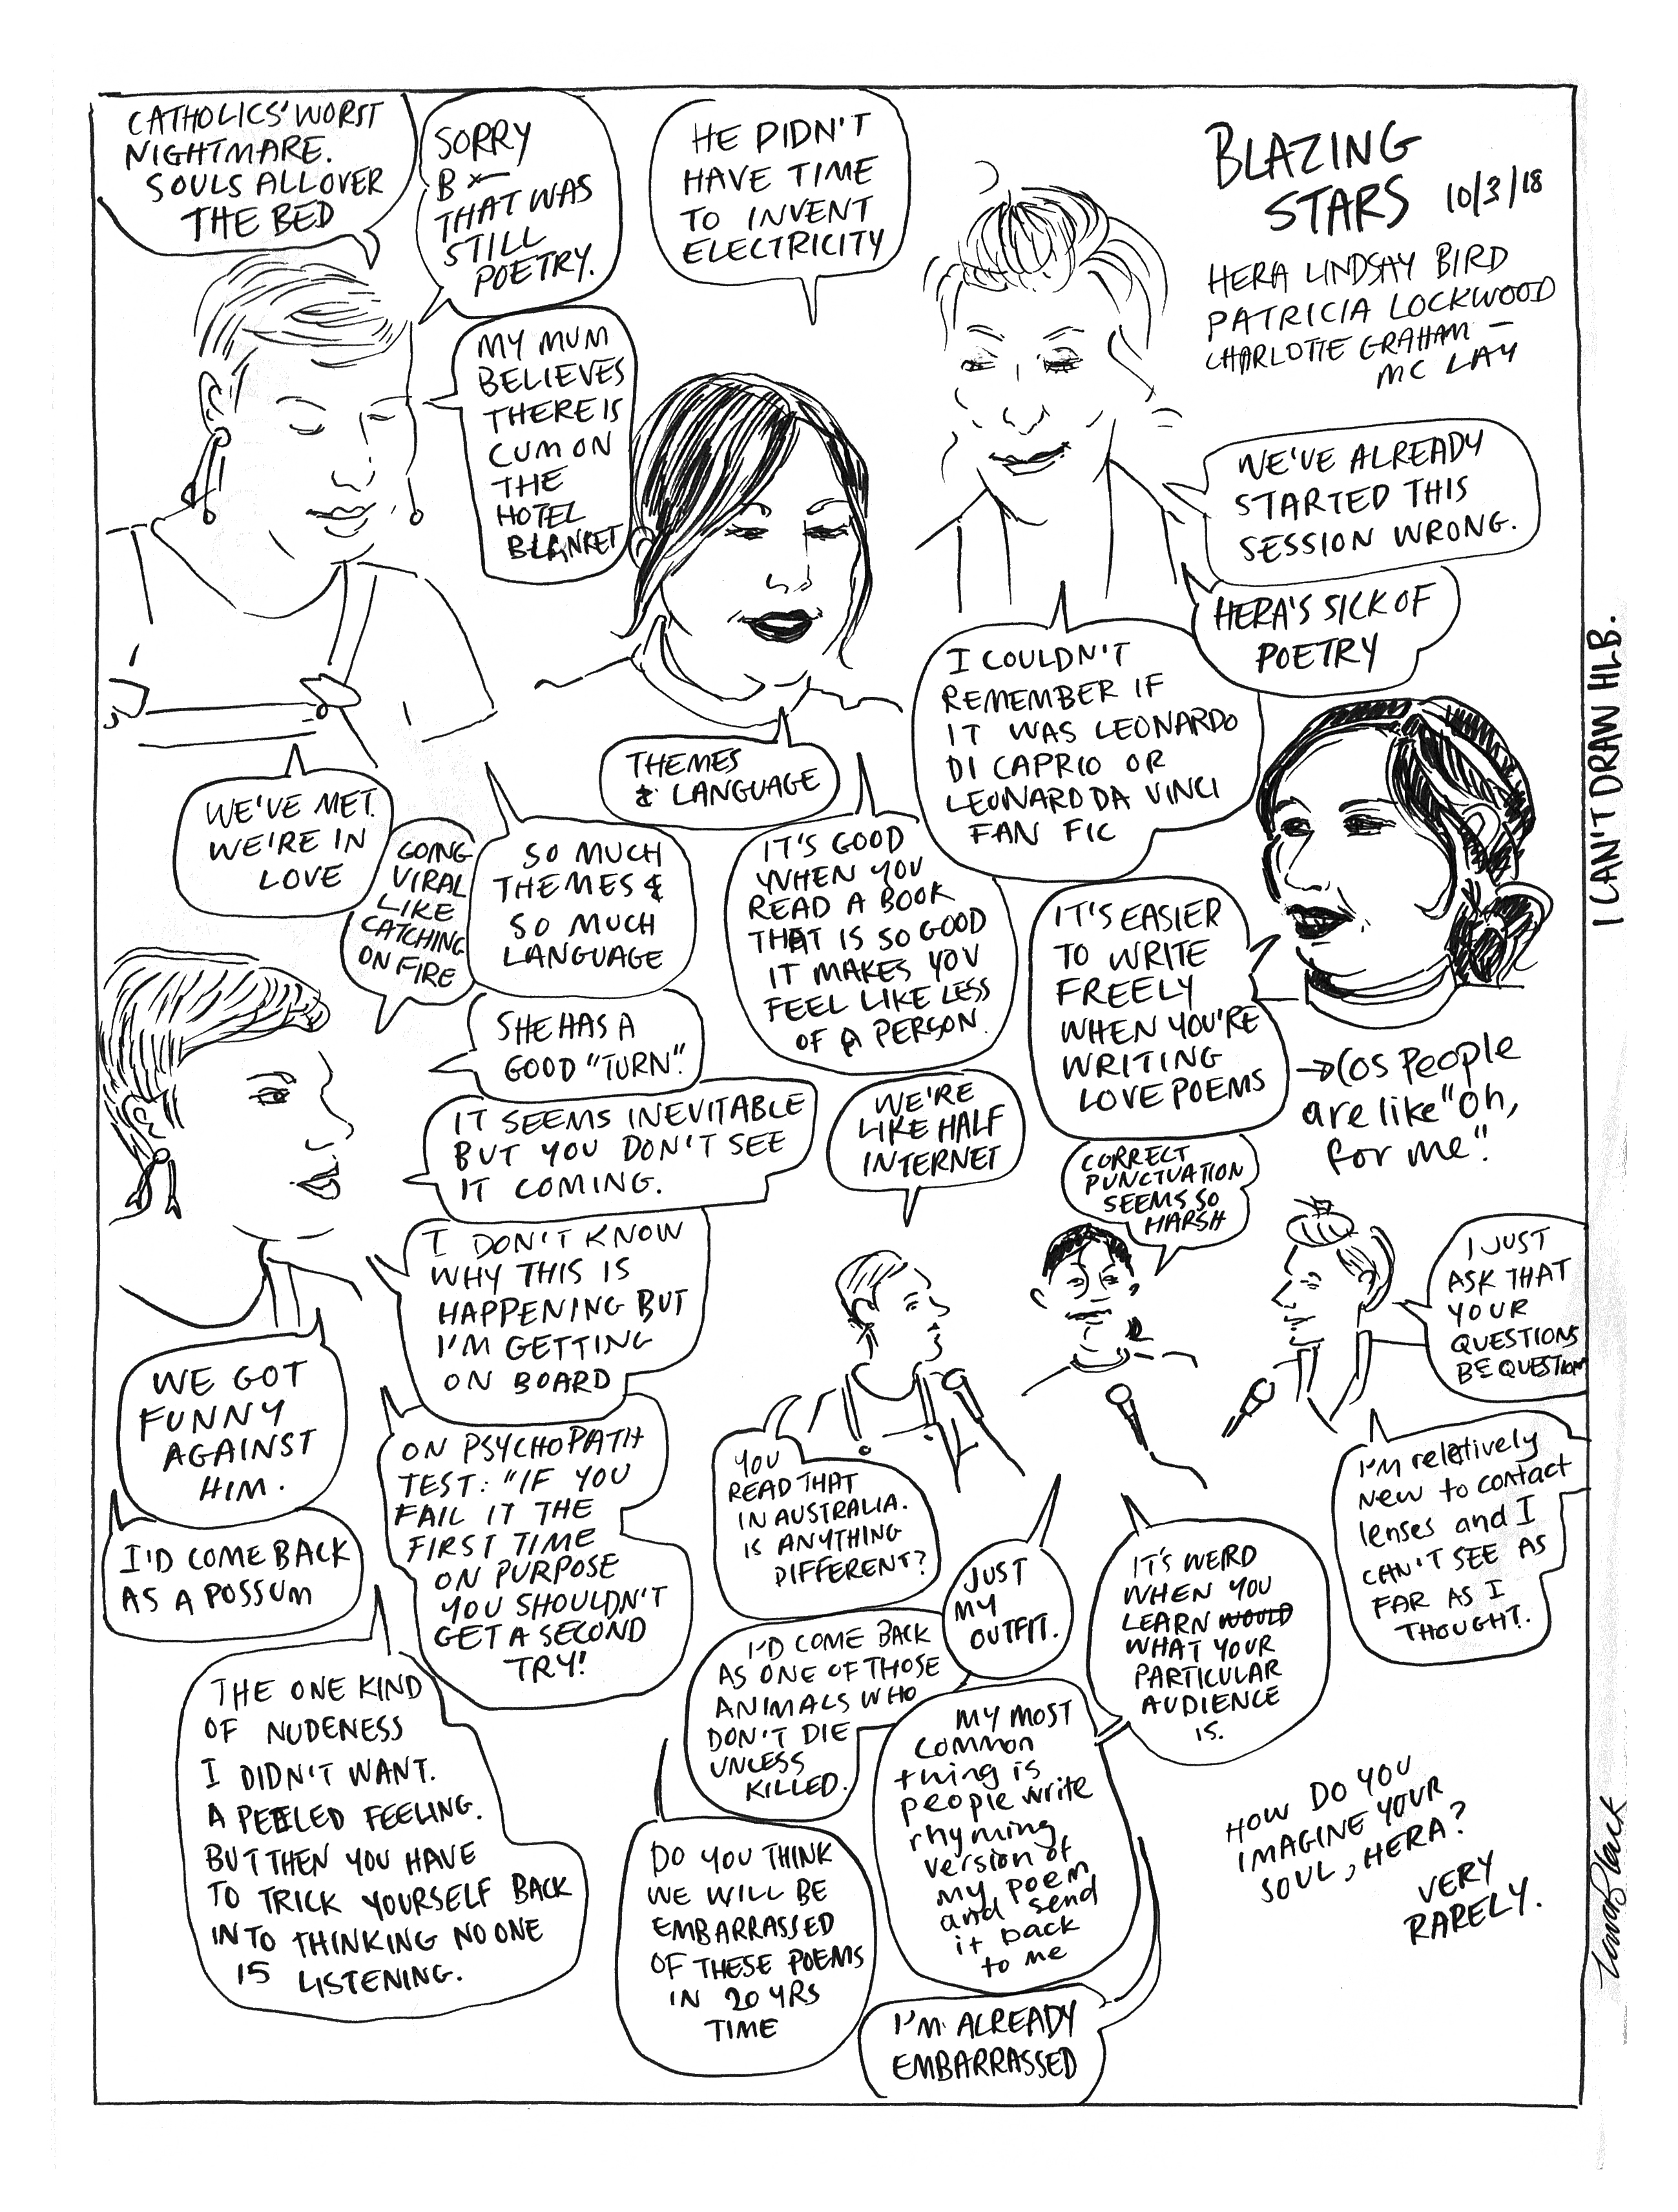 Comic/drawing of Hera Lindsay Bird and Patricia Lockwood in discussion with Charlotte Graham-Mclay at NZWF 2018.